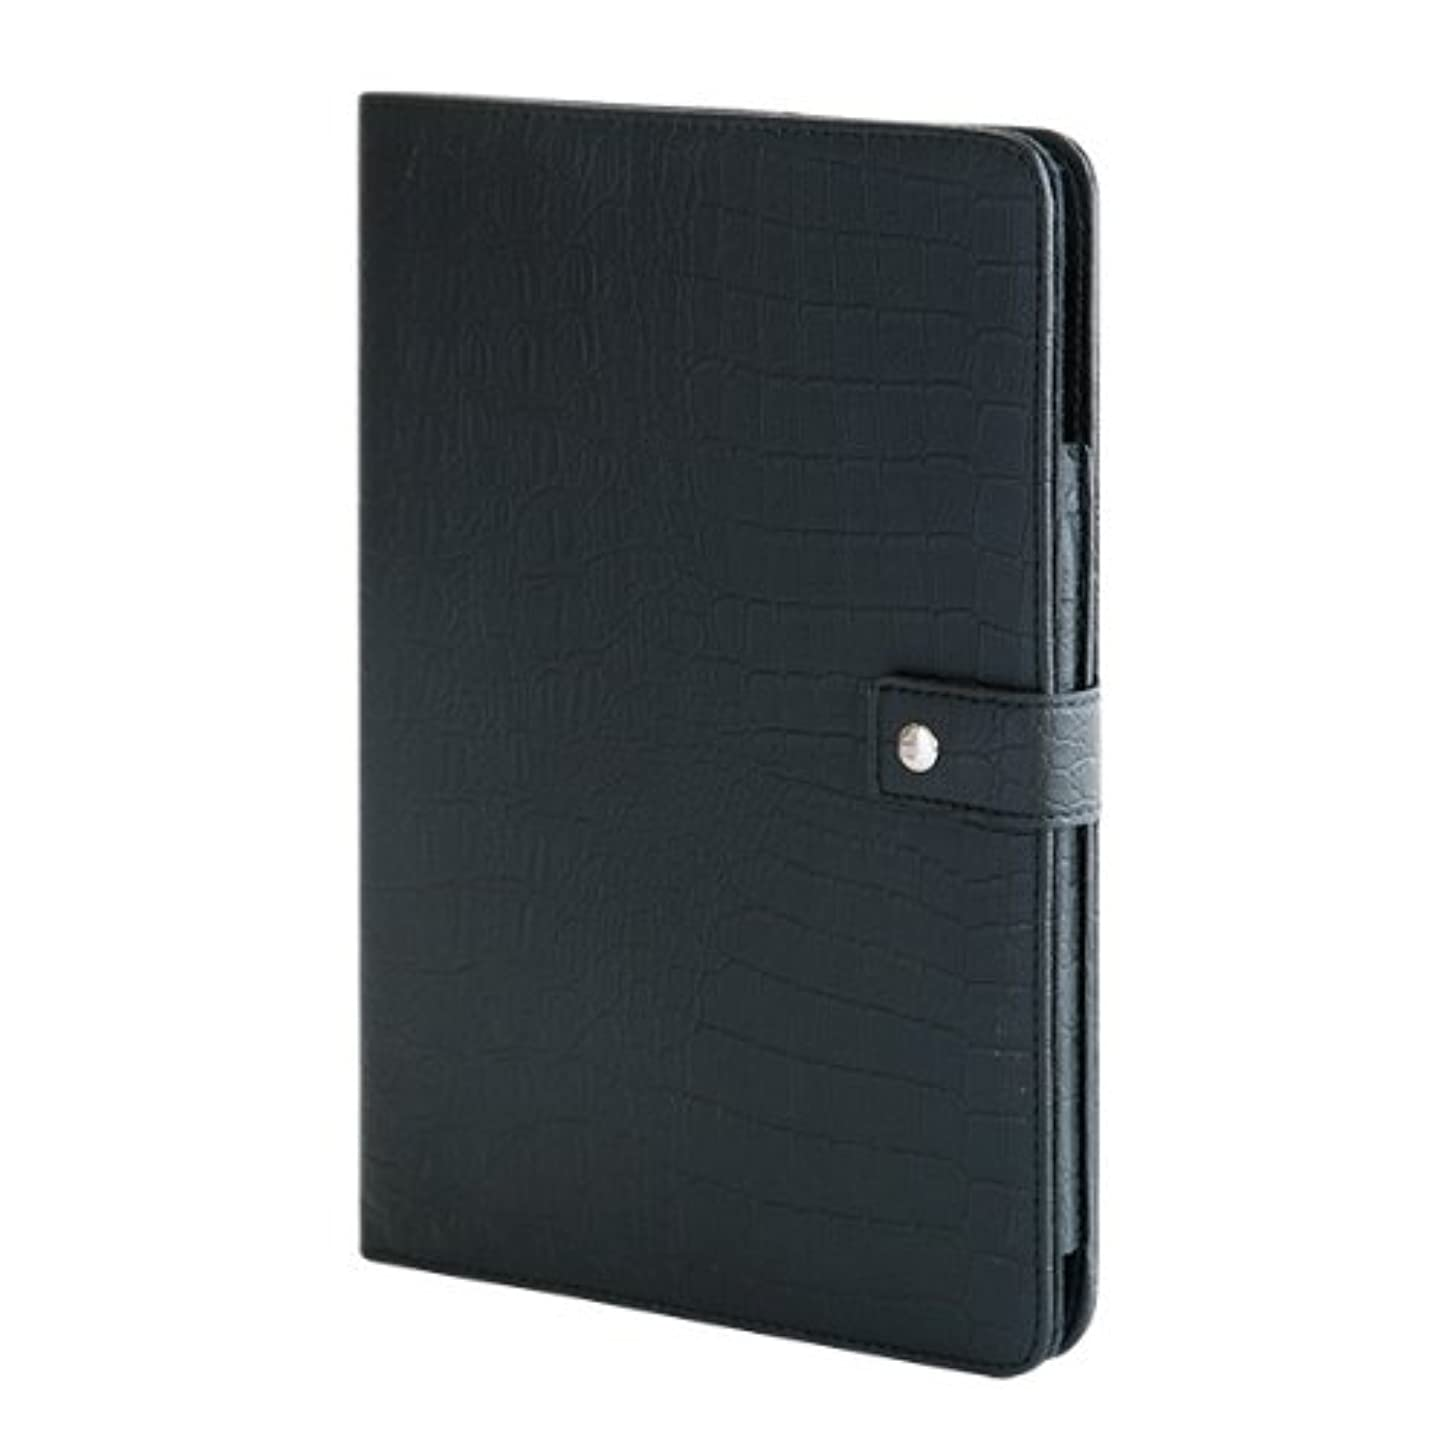 舌な主要なセグメントBluevision Croco Folio Case for iPad Air Black